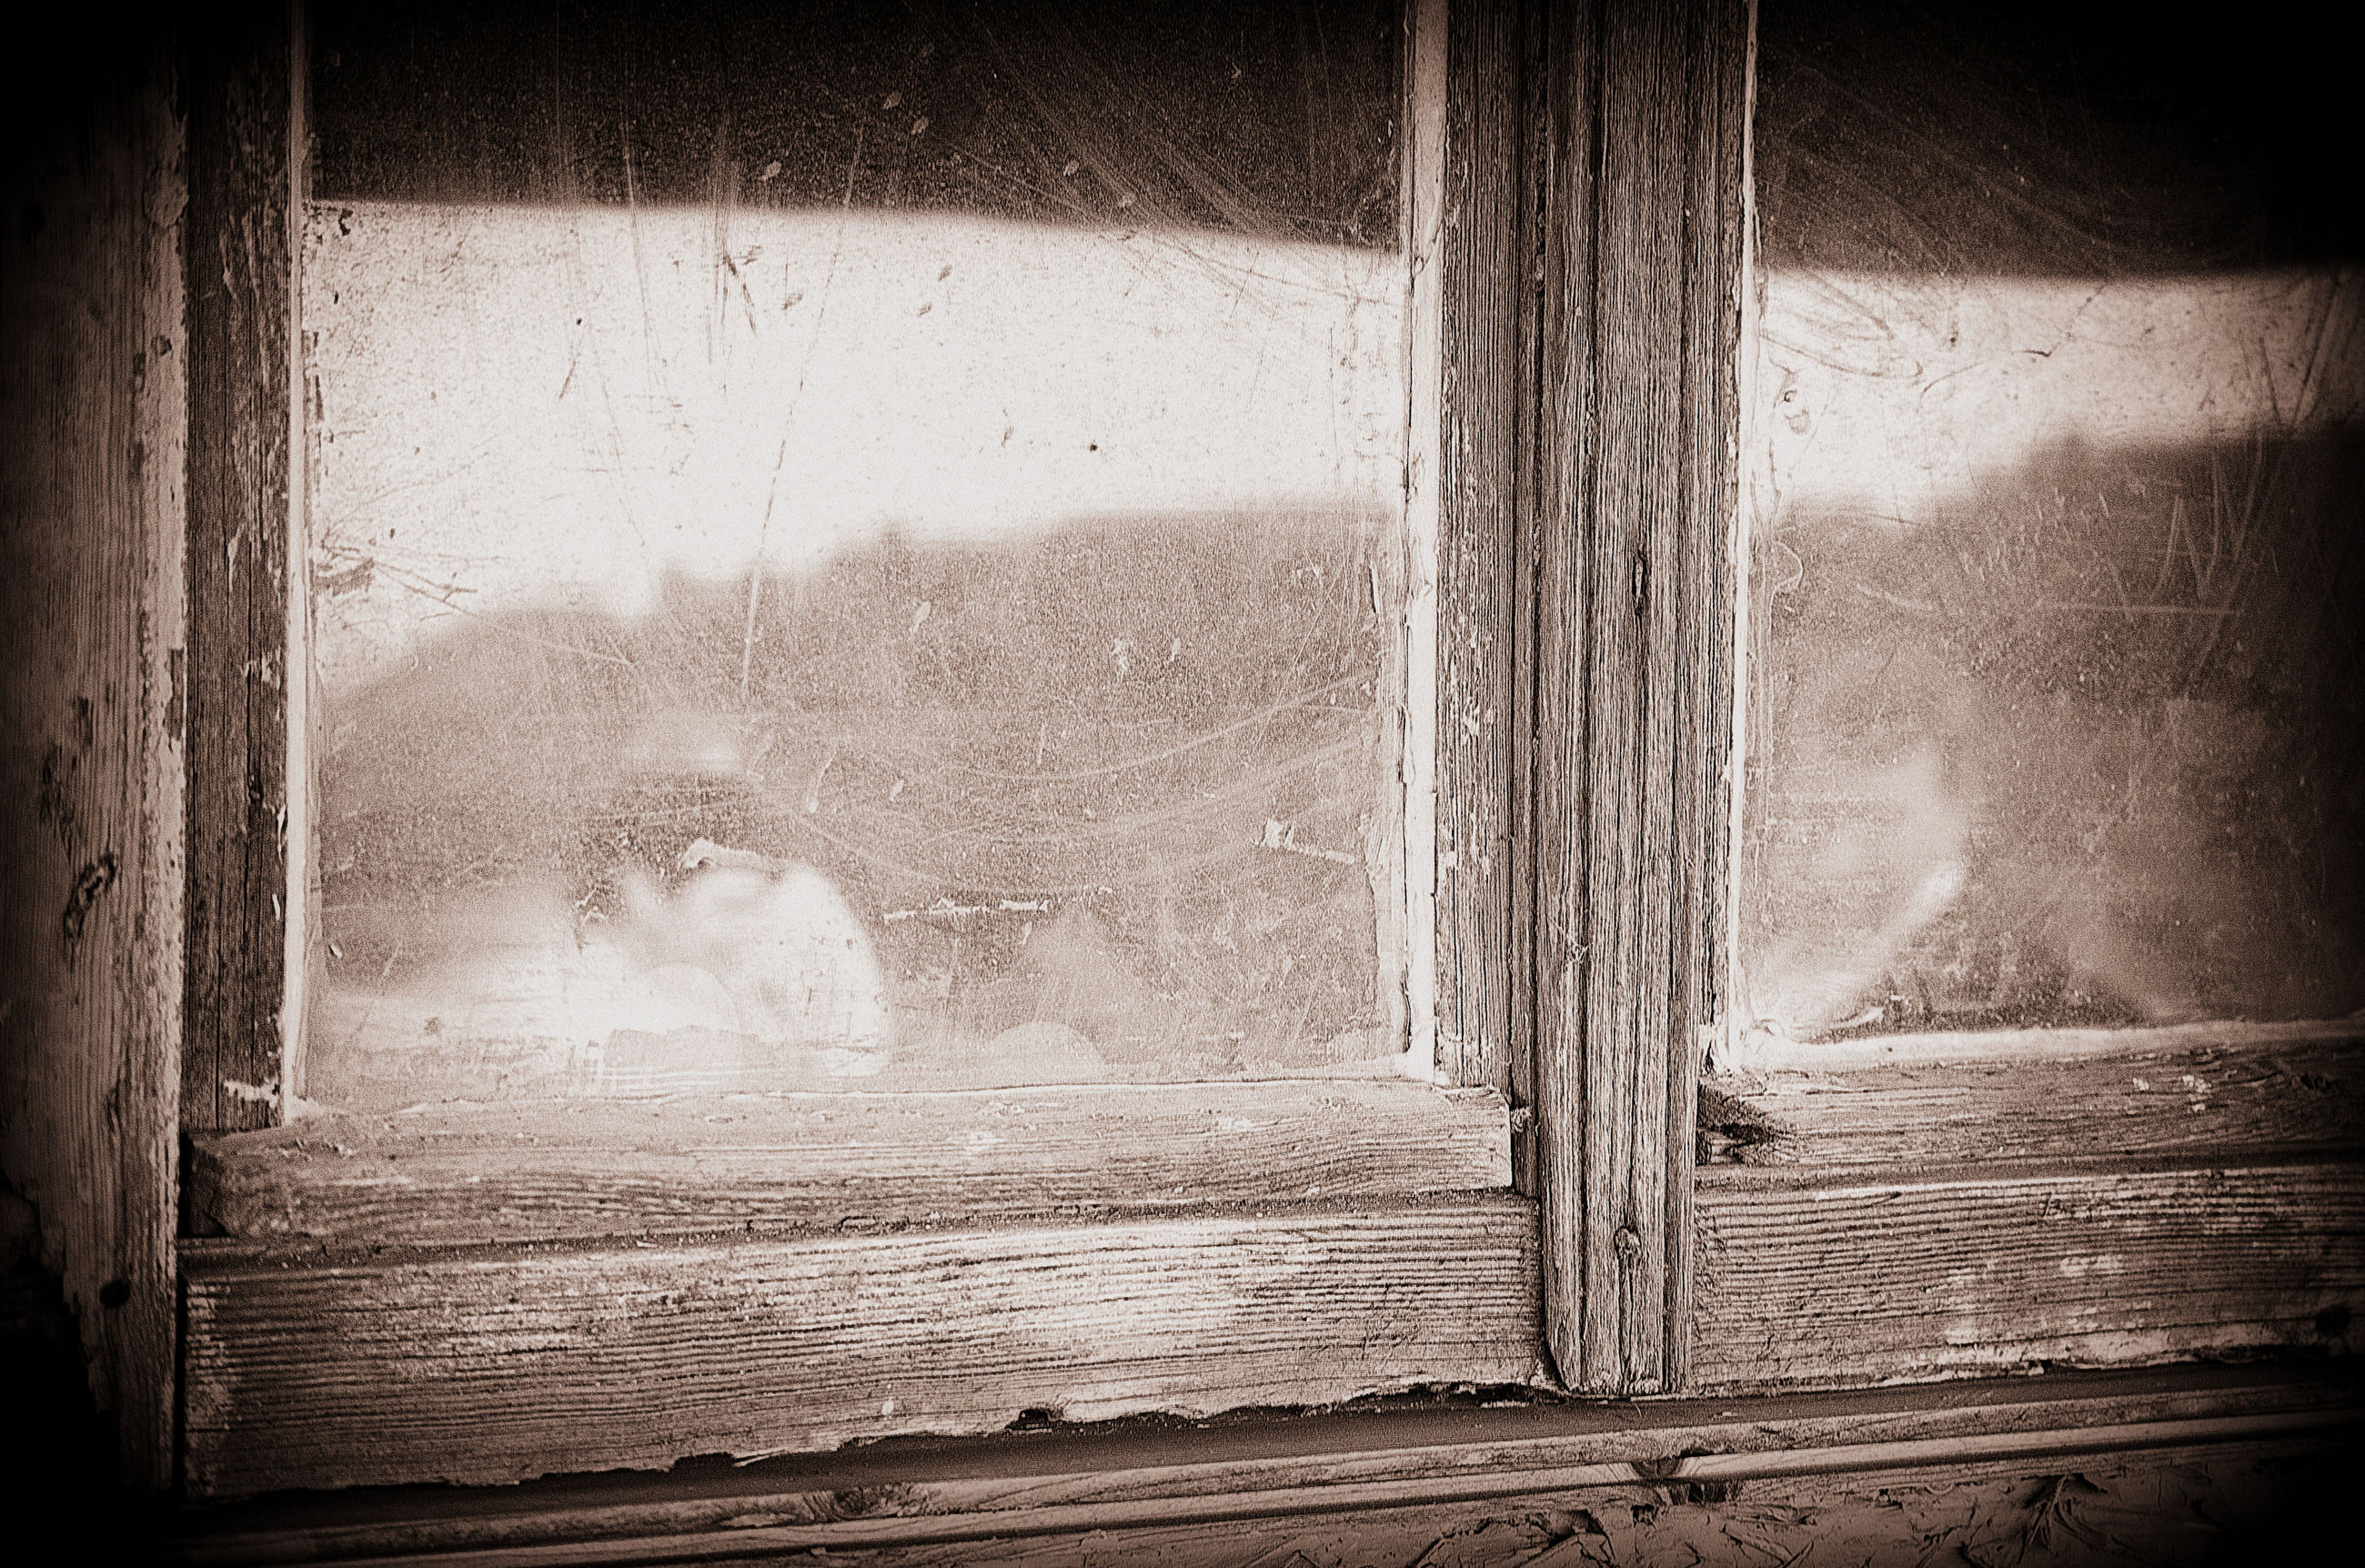 window, indoors, glass - material, wood - material, transparent, curtain, one person, day, house, looking, reflection, real people, home interior, close-up, door, old, wood, innocence, window frame, wood grain